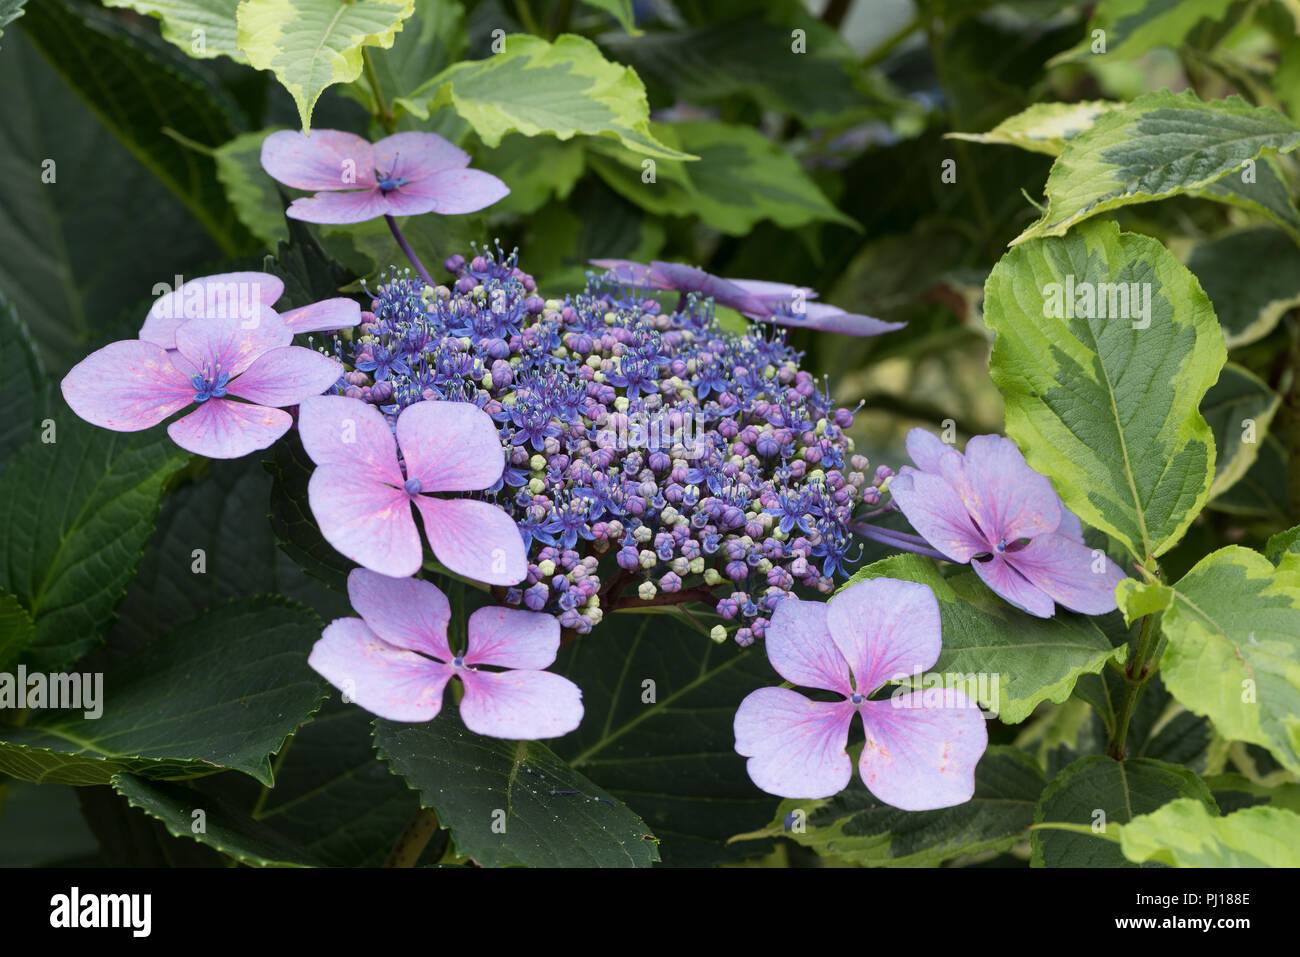 Confusion Changing Ph Of Soil Means Developing Hydrangea Flowers